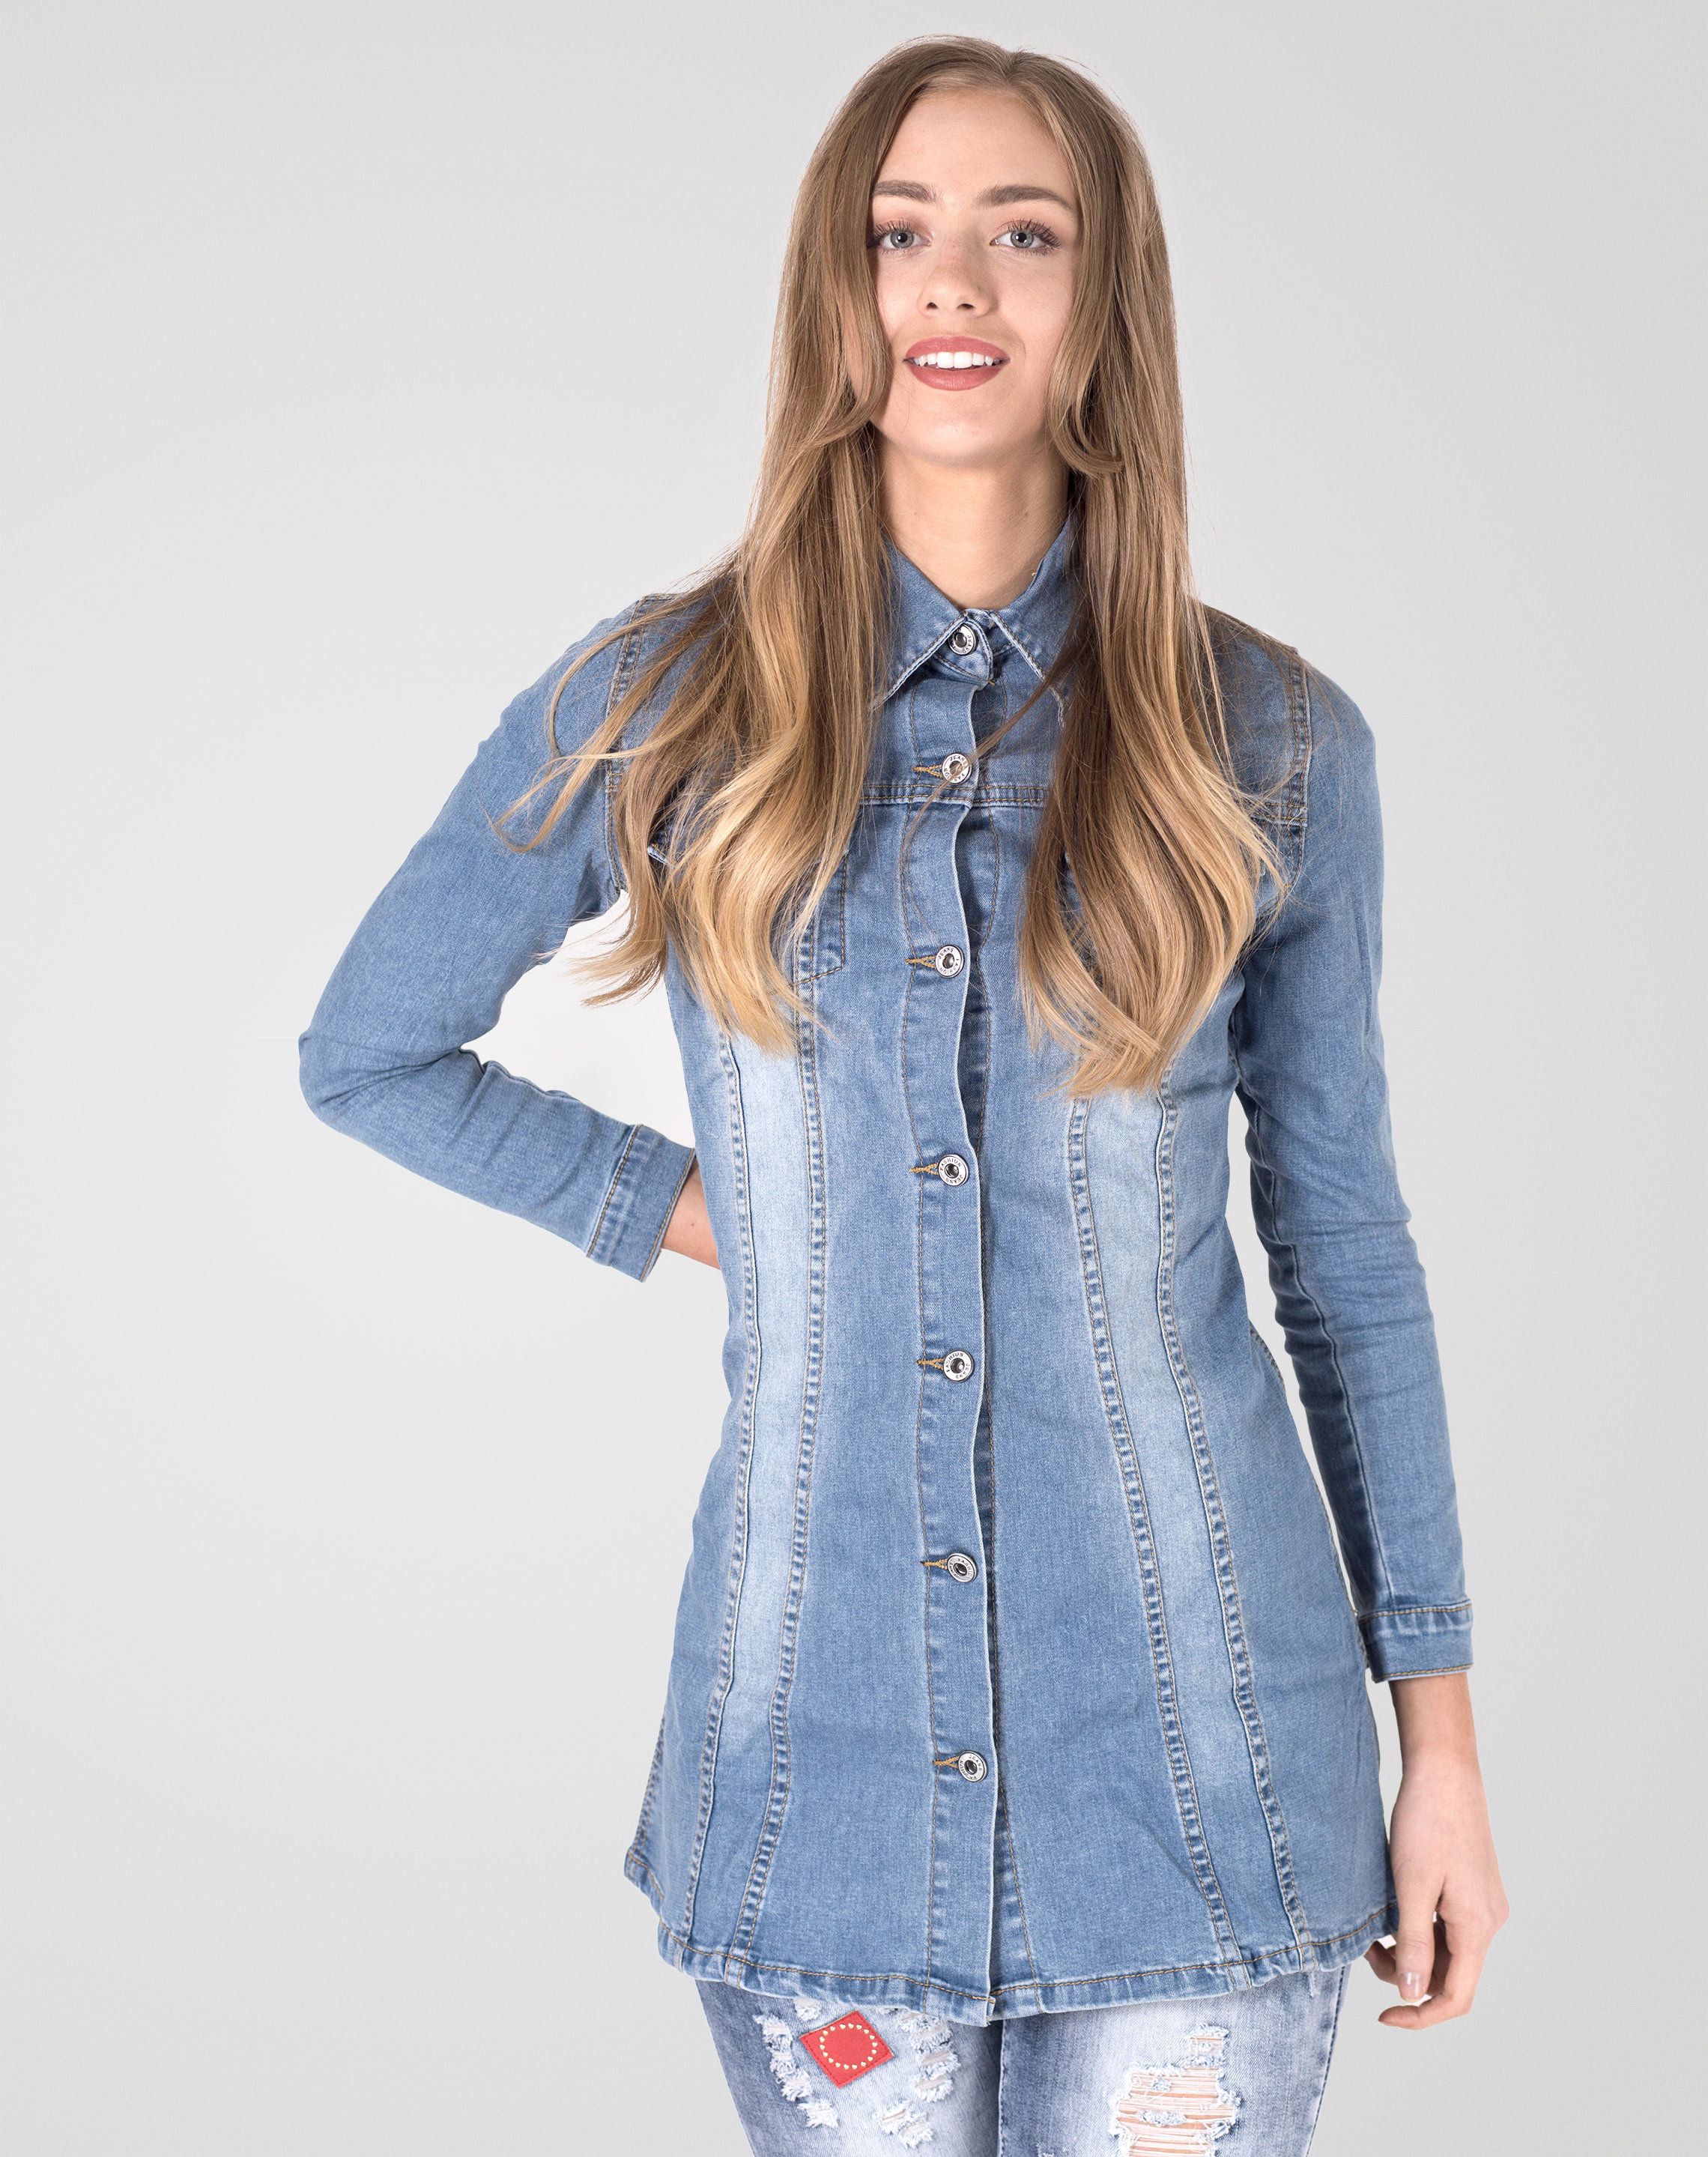 Image 1 of Womens Denim Vintage Shirt color Denim-Blue and sizes 6, 8, 10, 12, 14 from Noroze